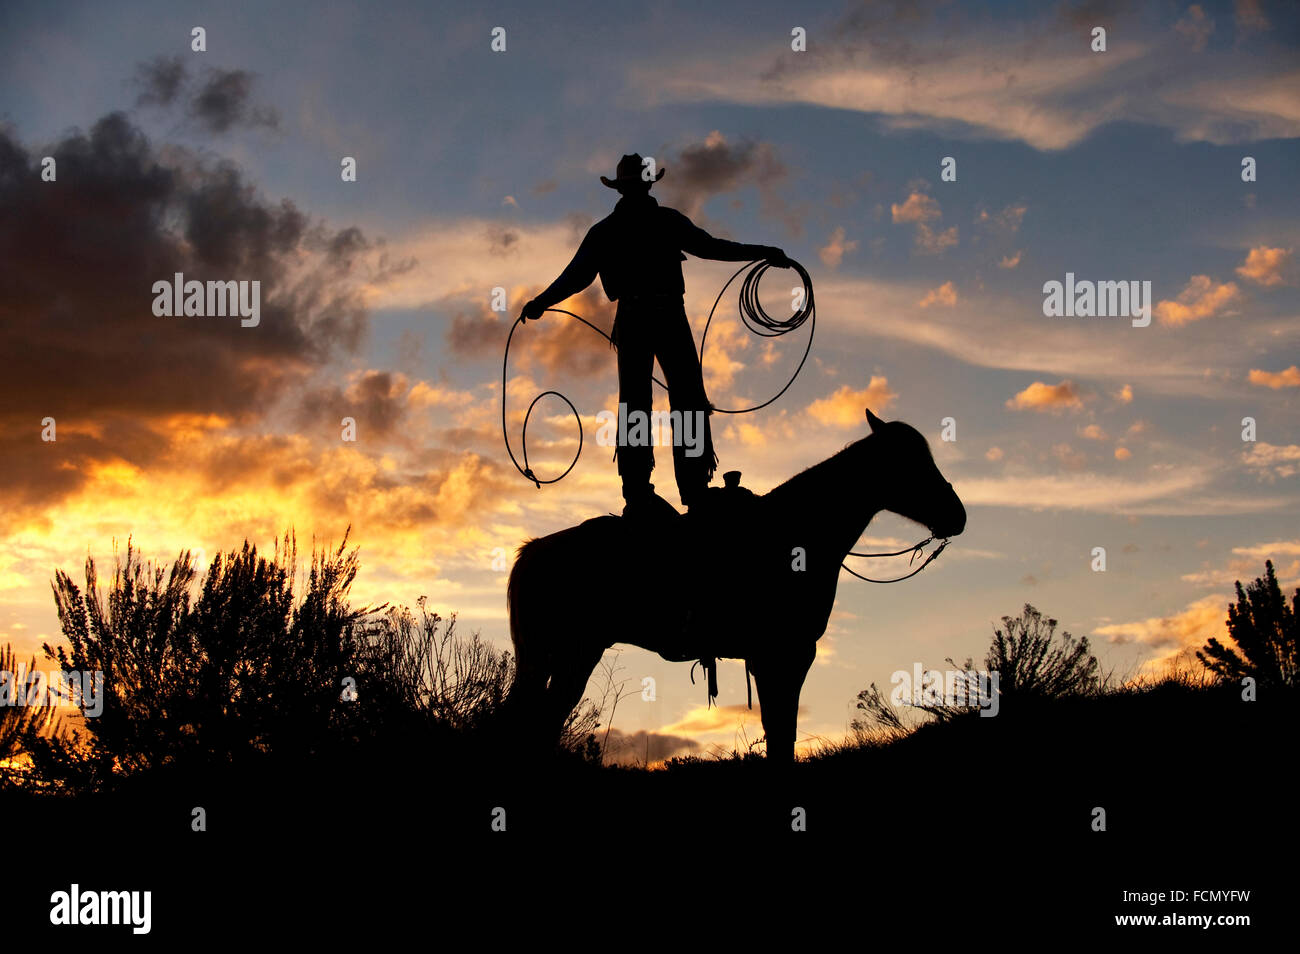 Cowboy Standing on Horse With Rope at Sunset - Stock Image